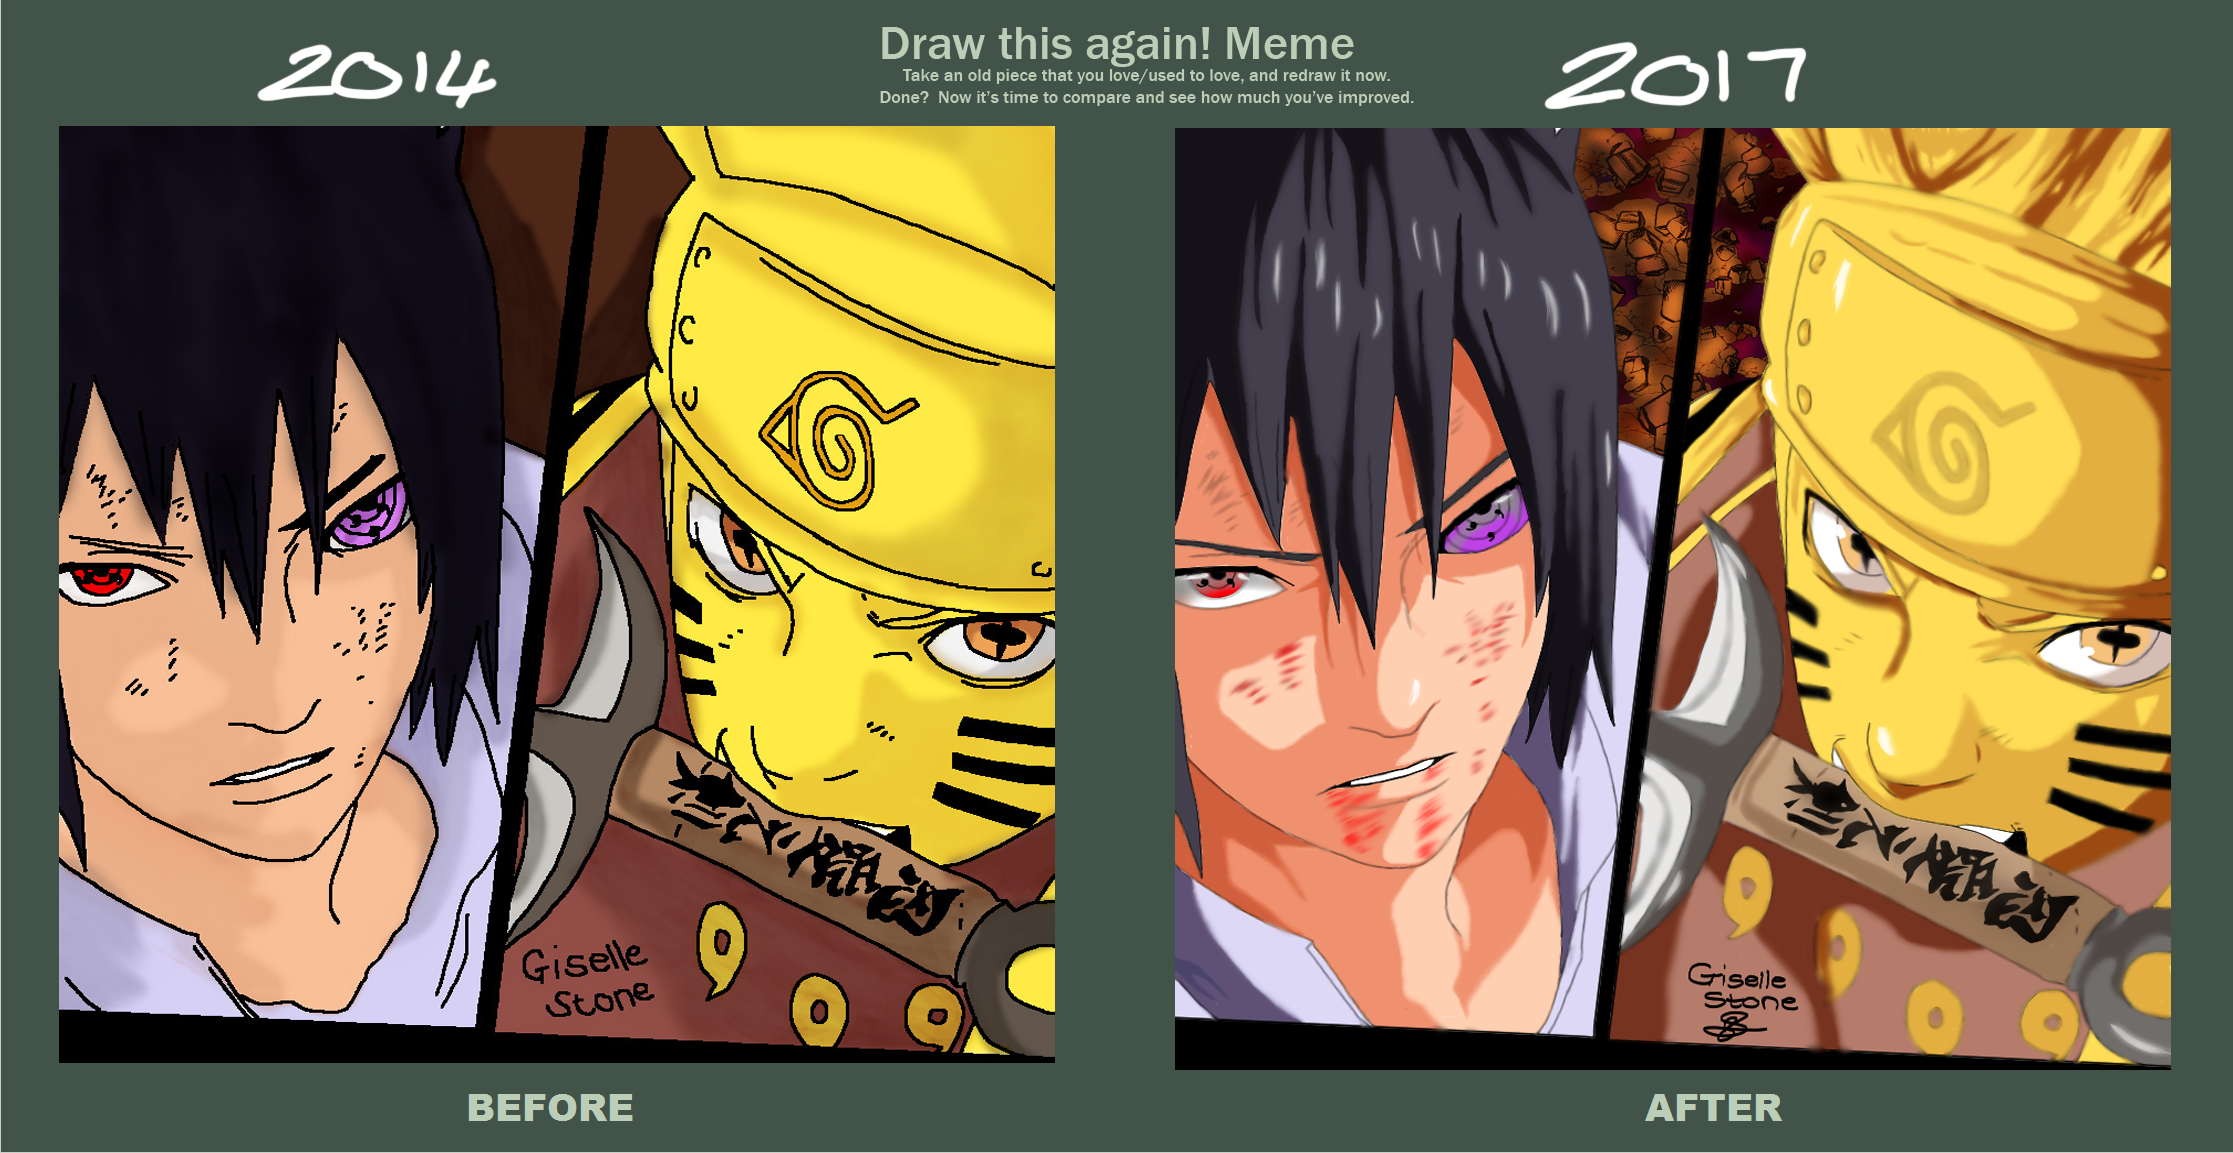 naruto and sasuke draw that again meme